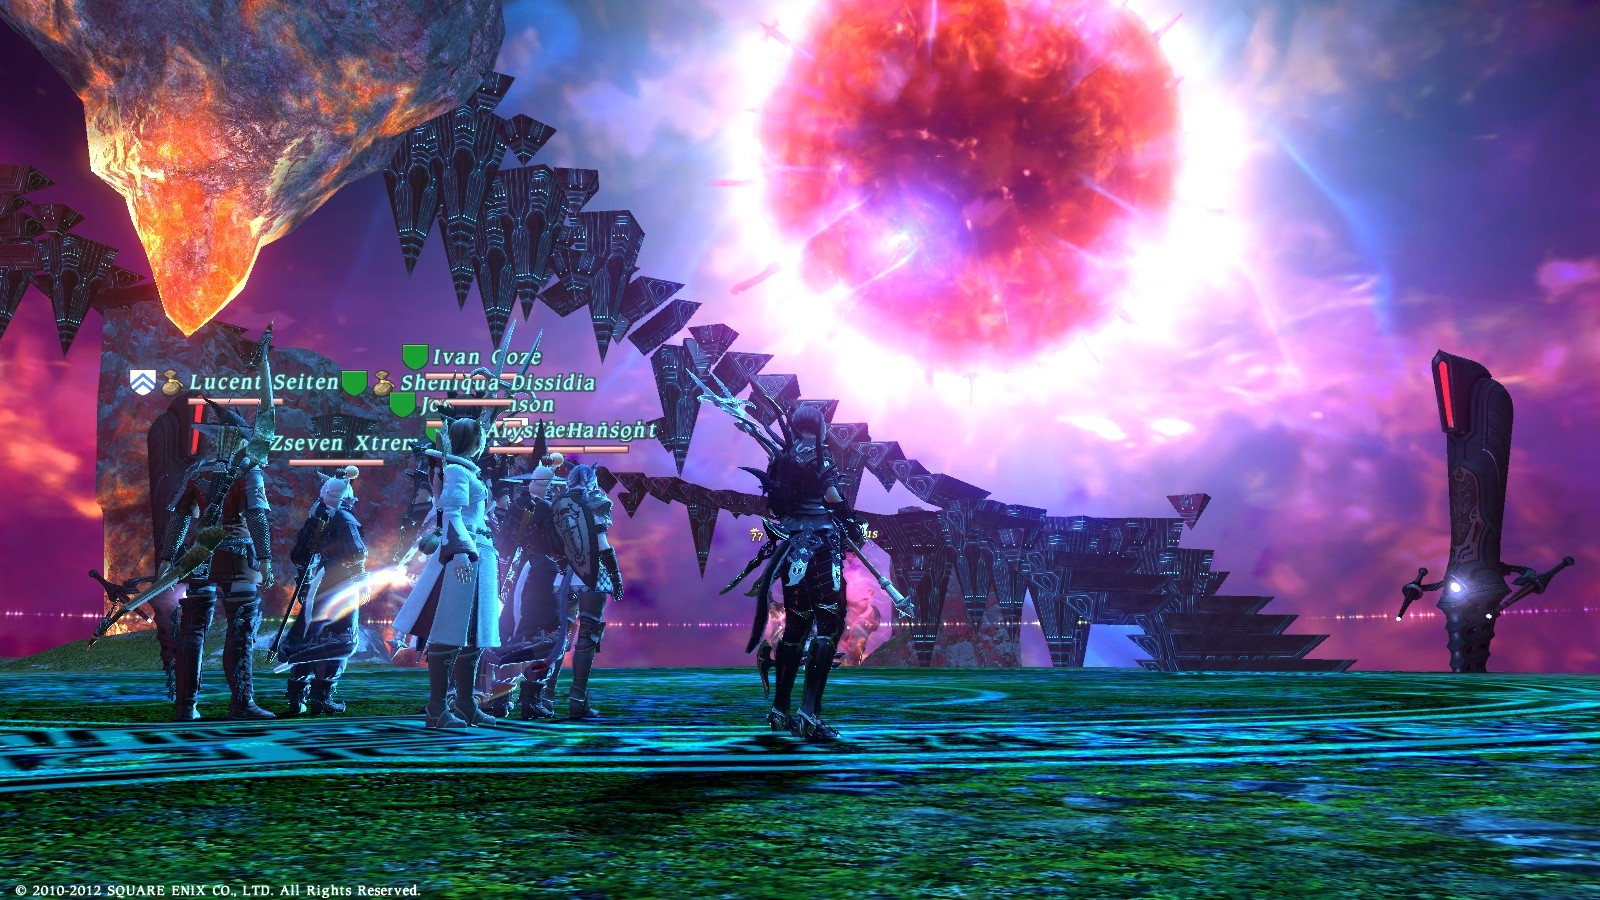 Final Fantasy XIV: A Realm Reborn - Beginning of second stage of Van Darnus fight in FFXIV. Very fun battle.